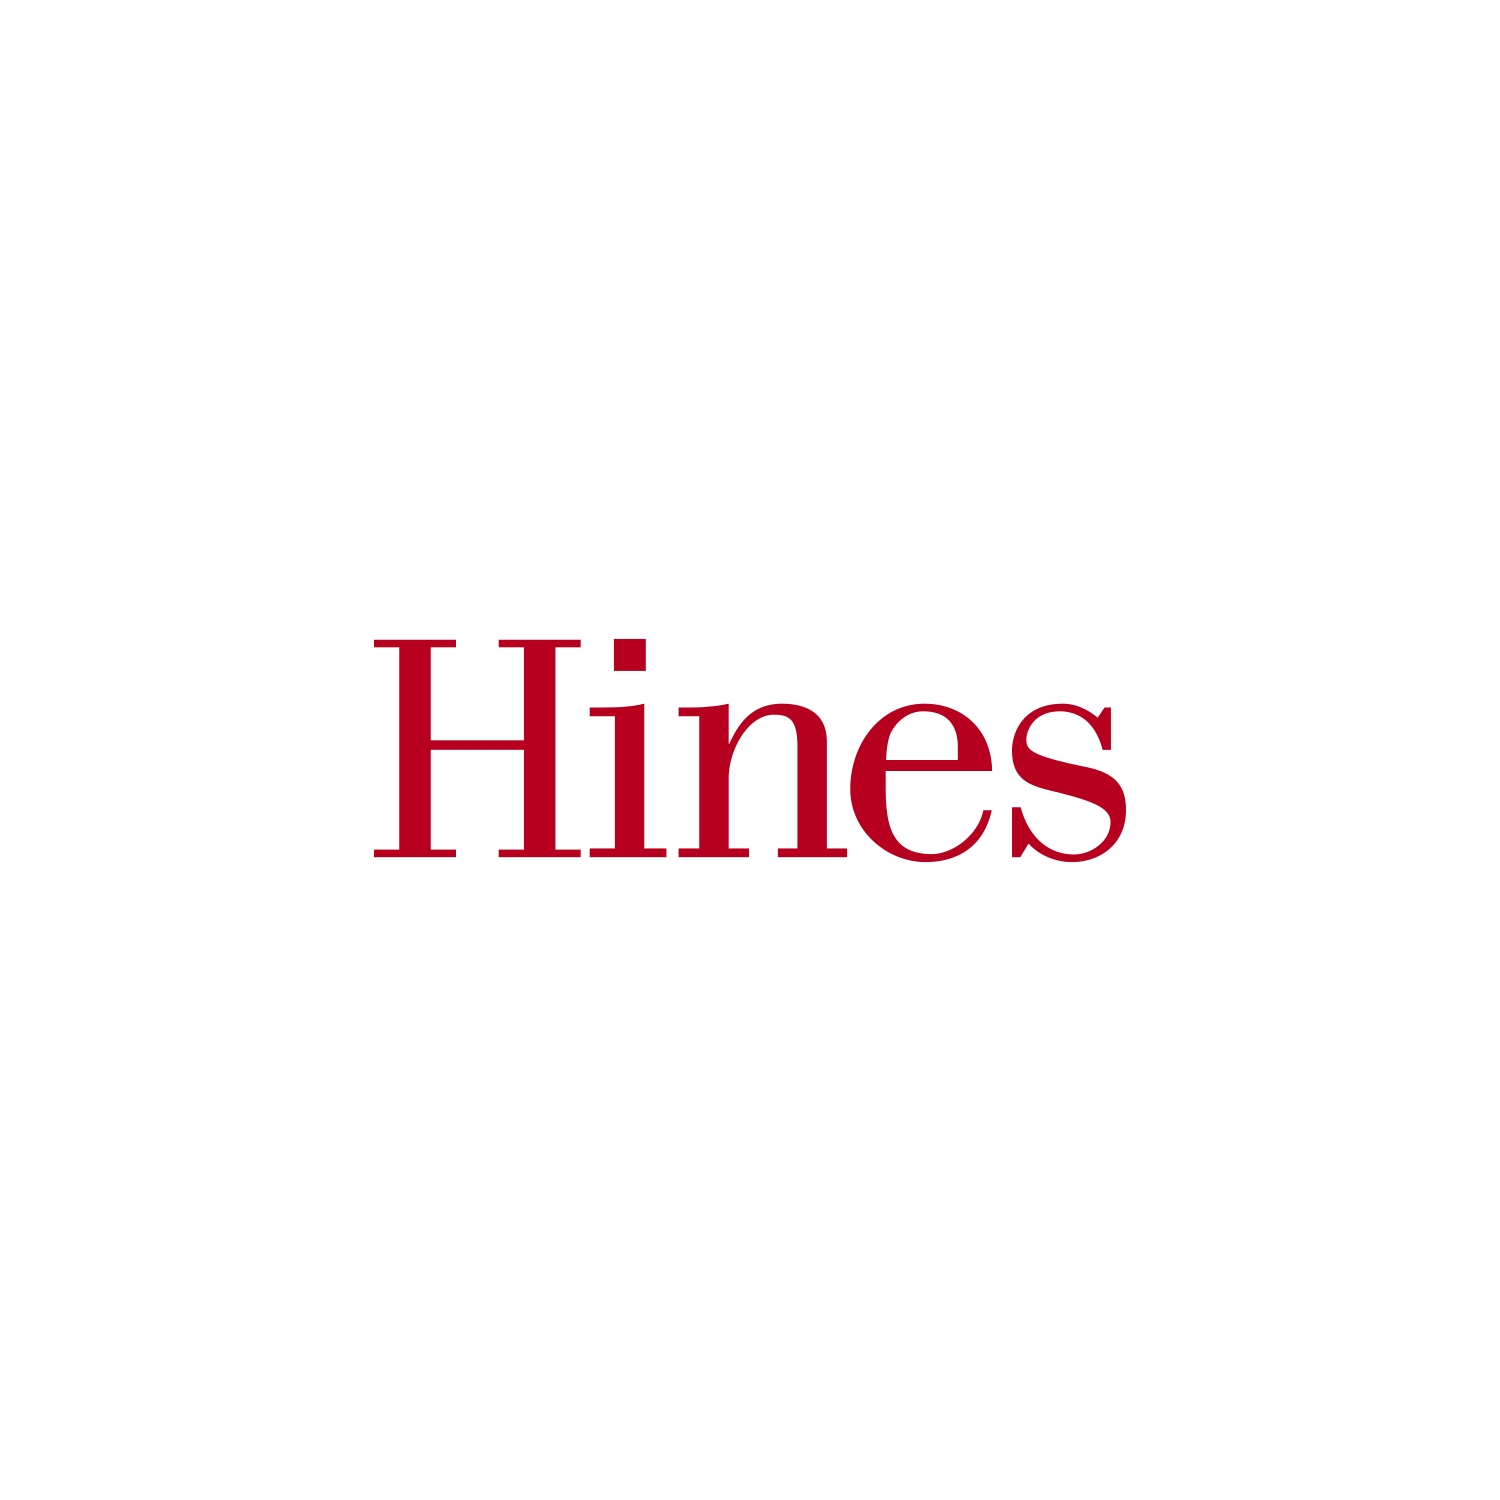 partners-hines-logo.png